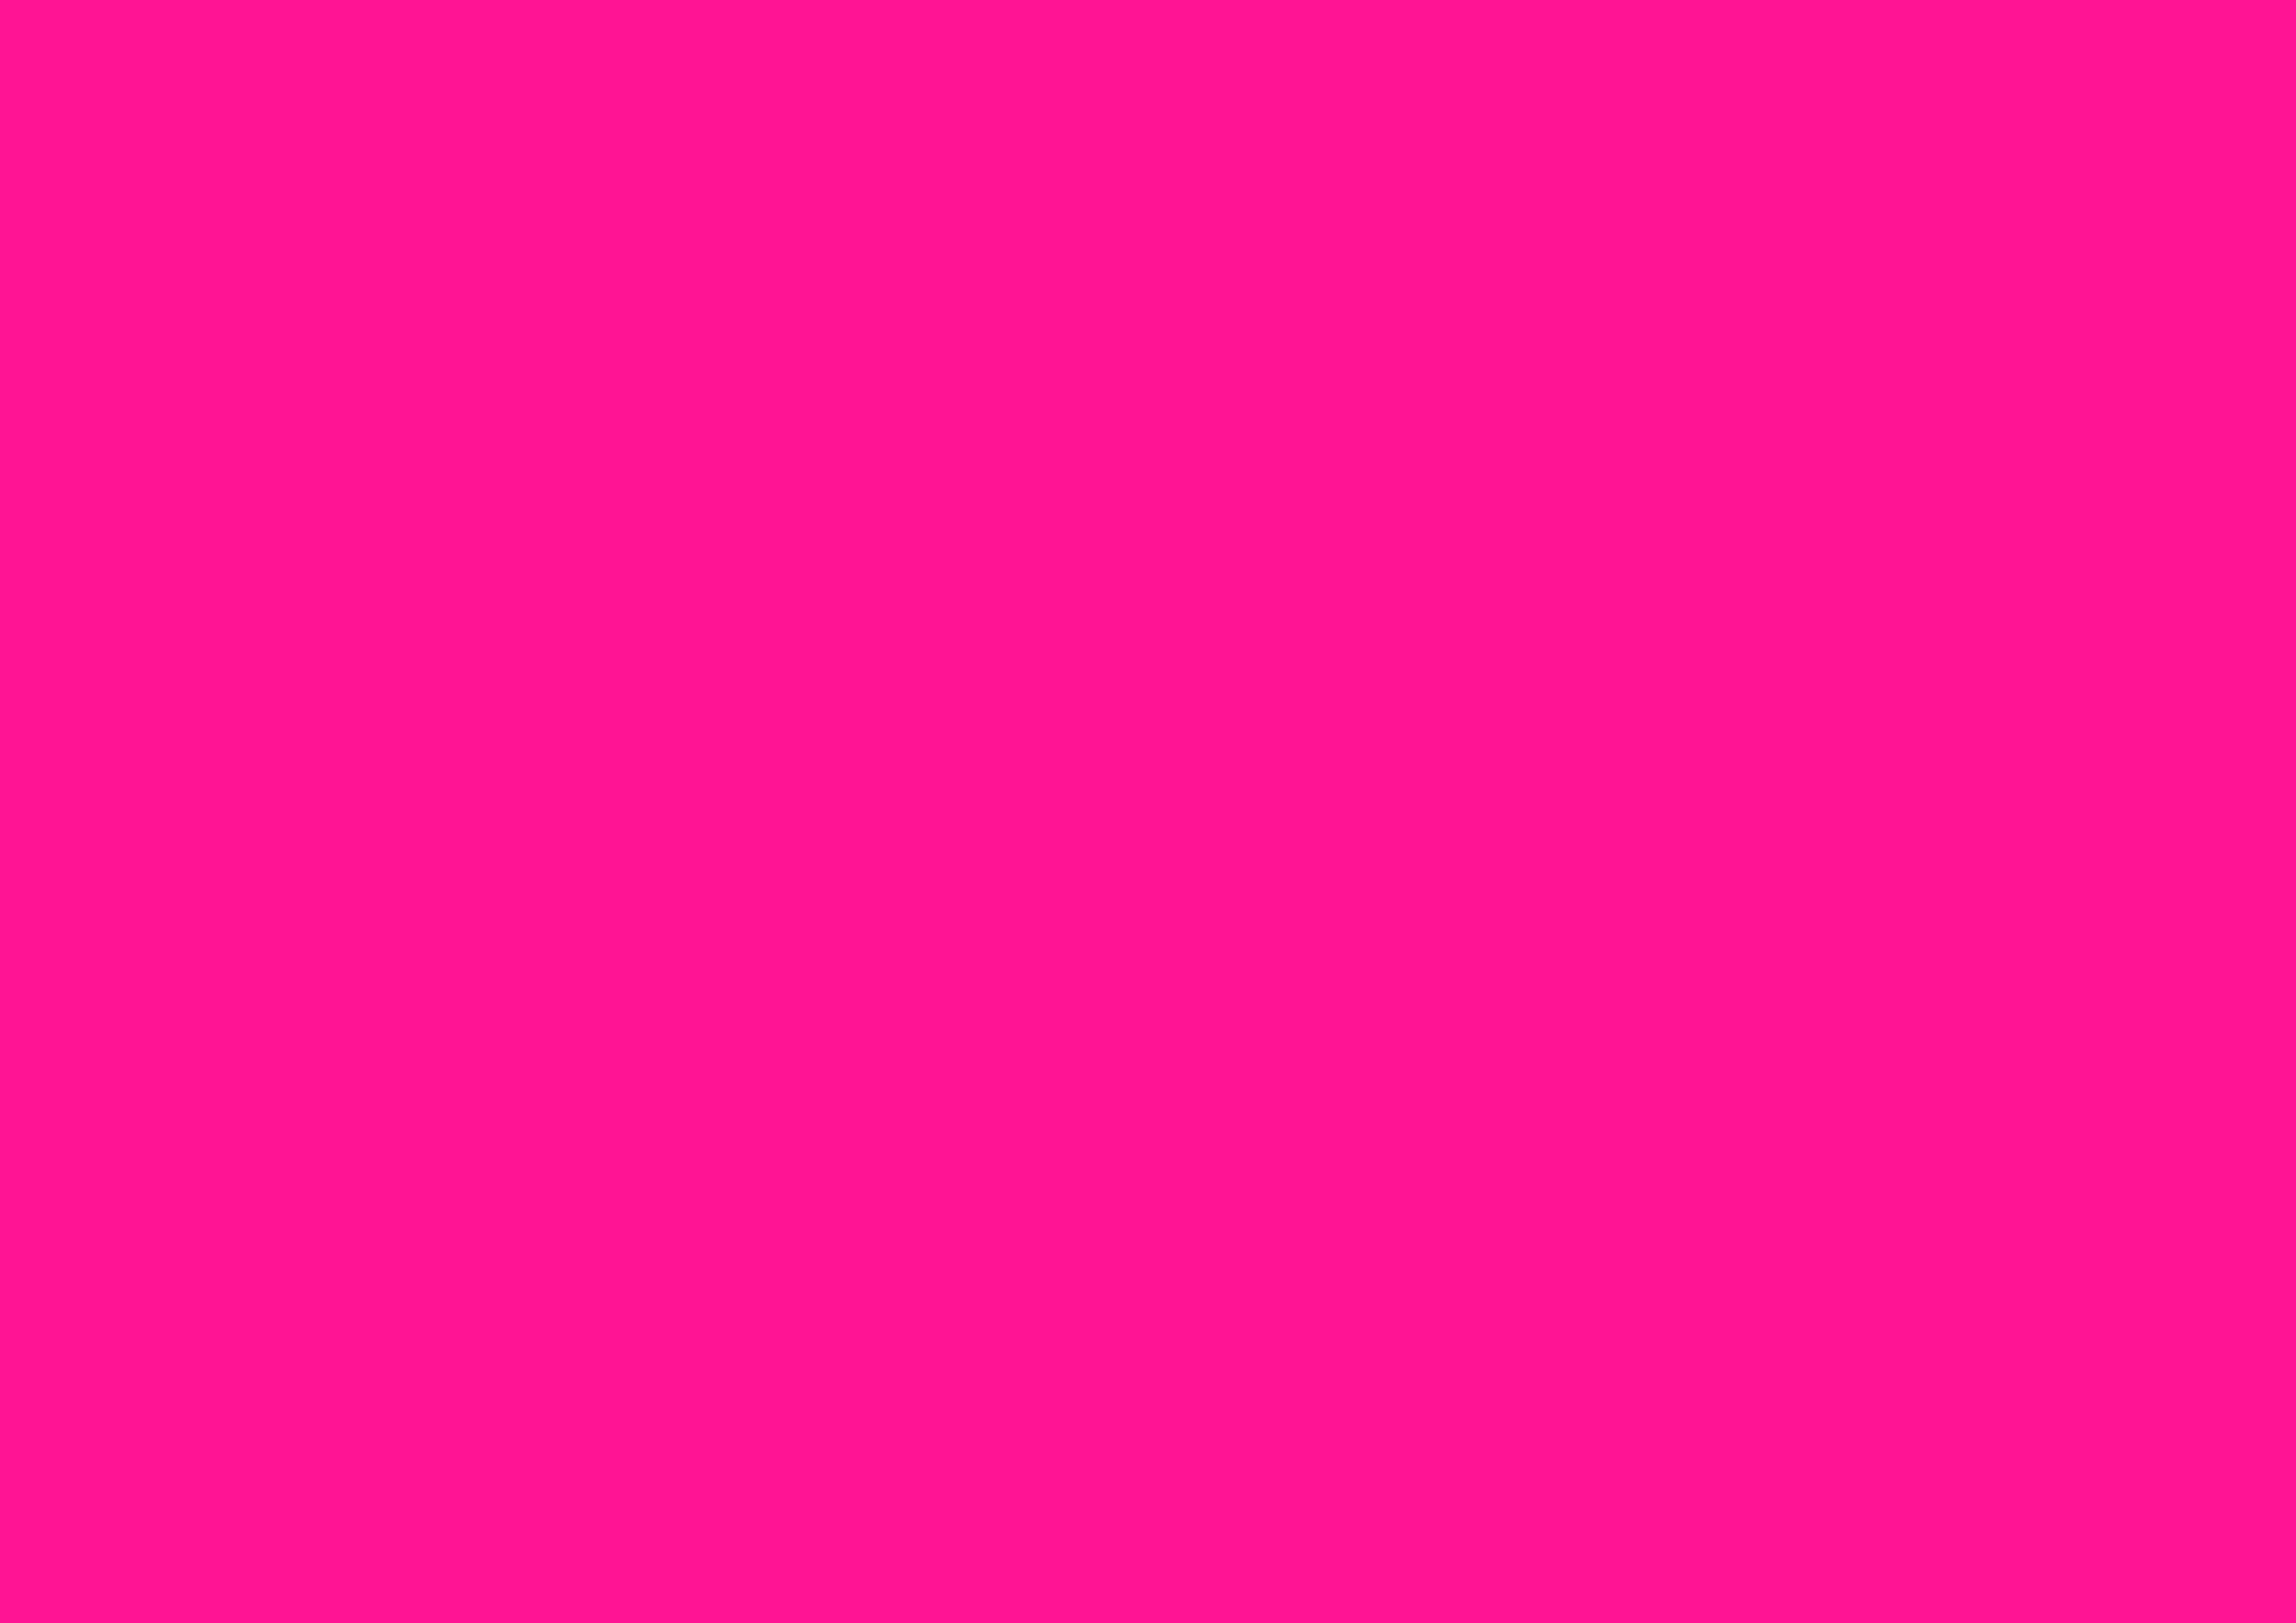 3508x2480 Deep Pink Solid Color Background